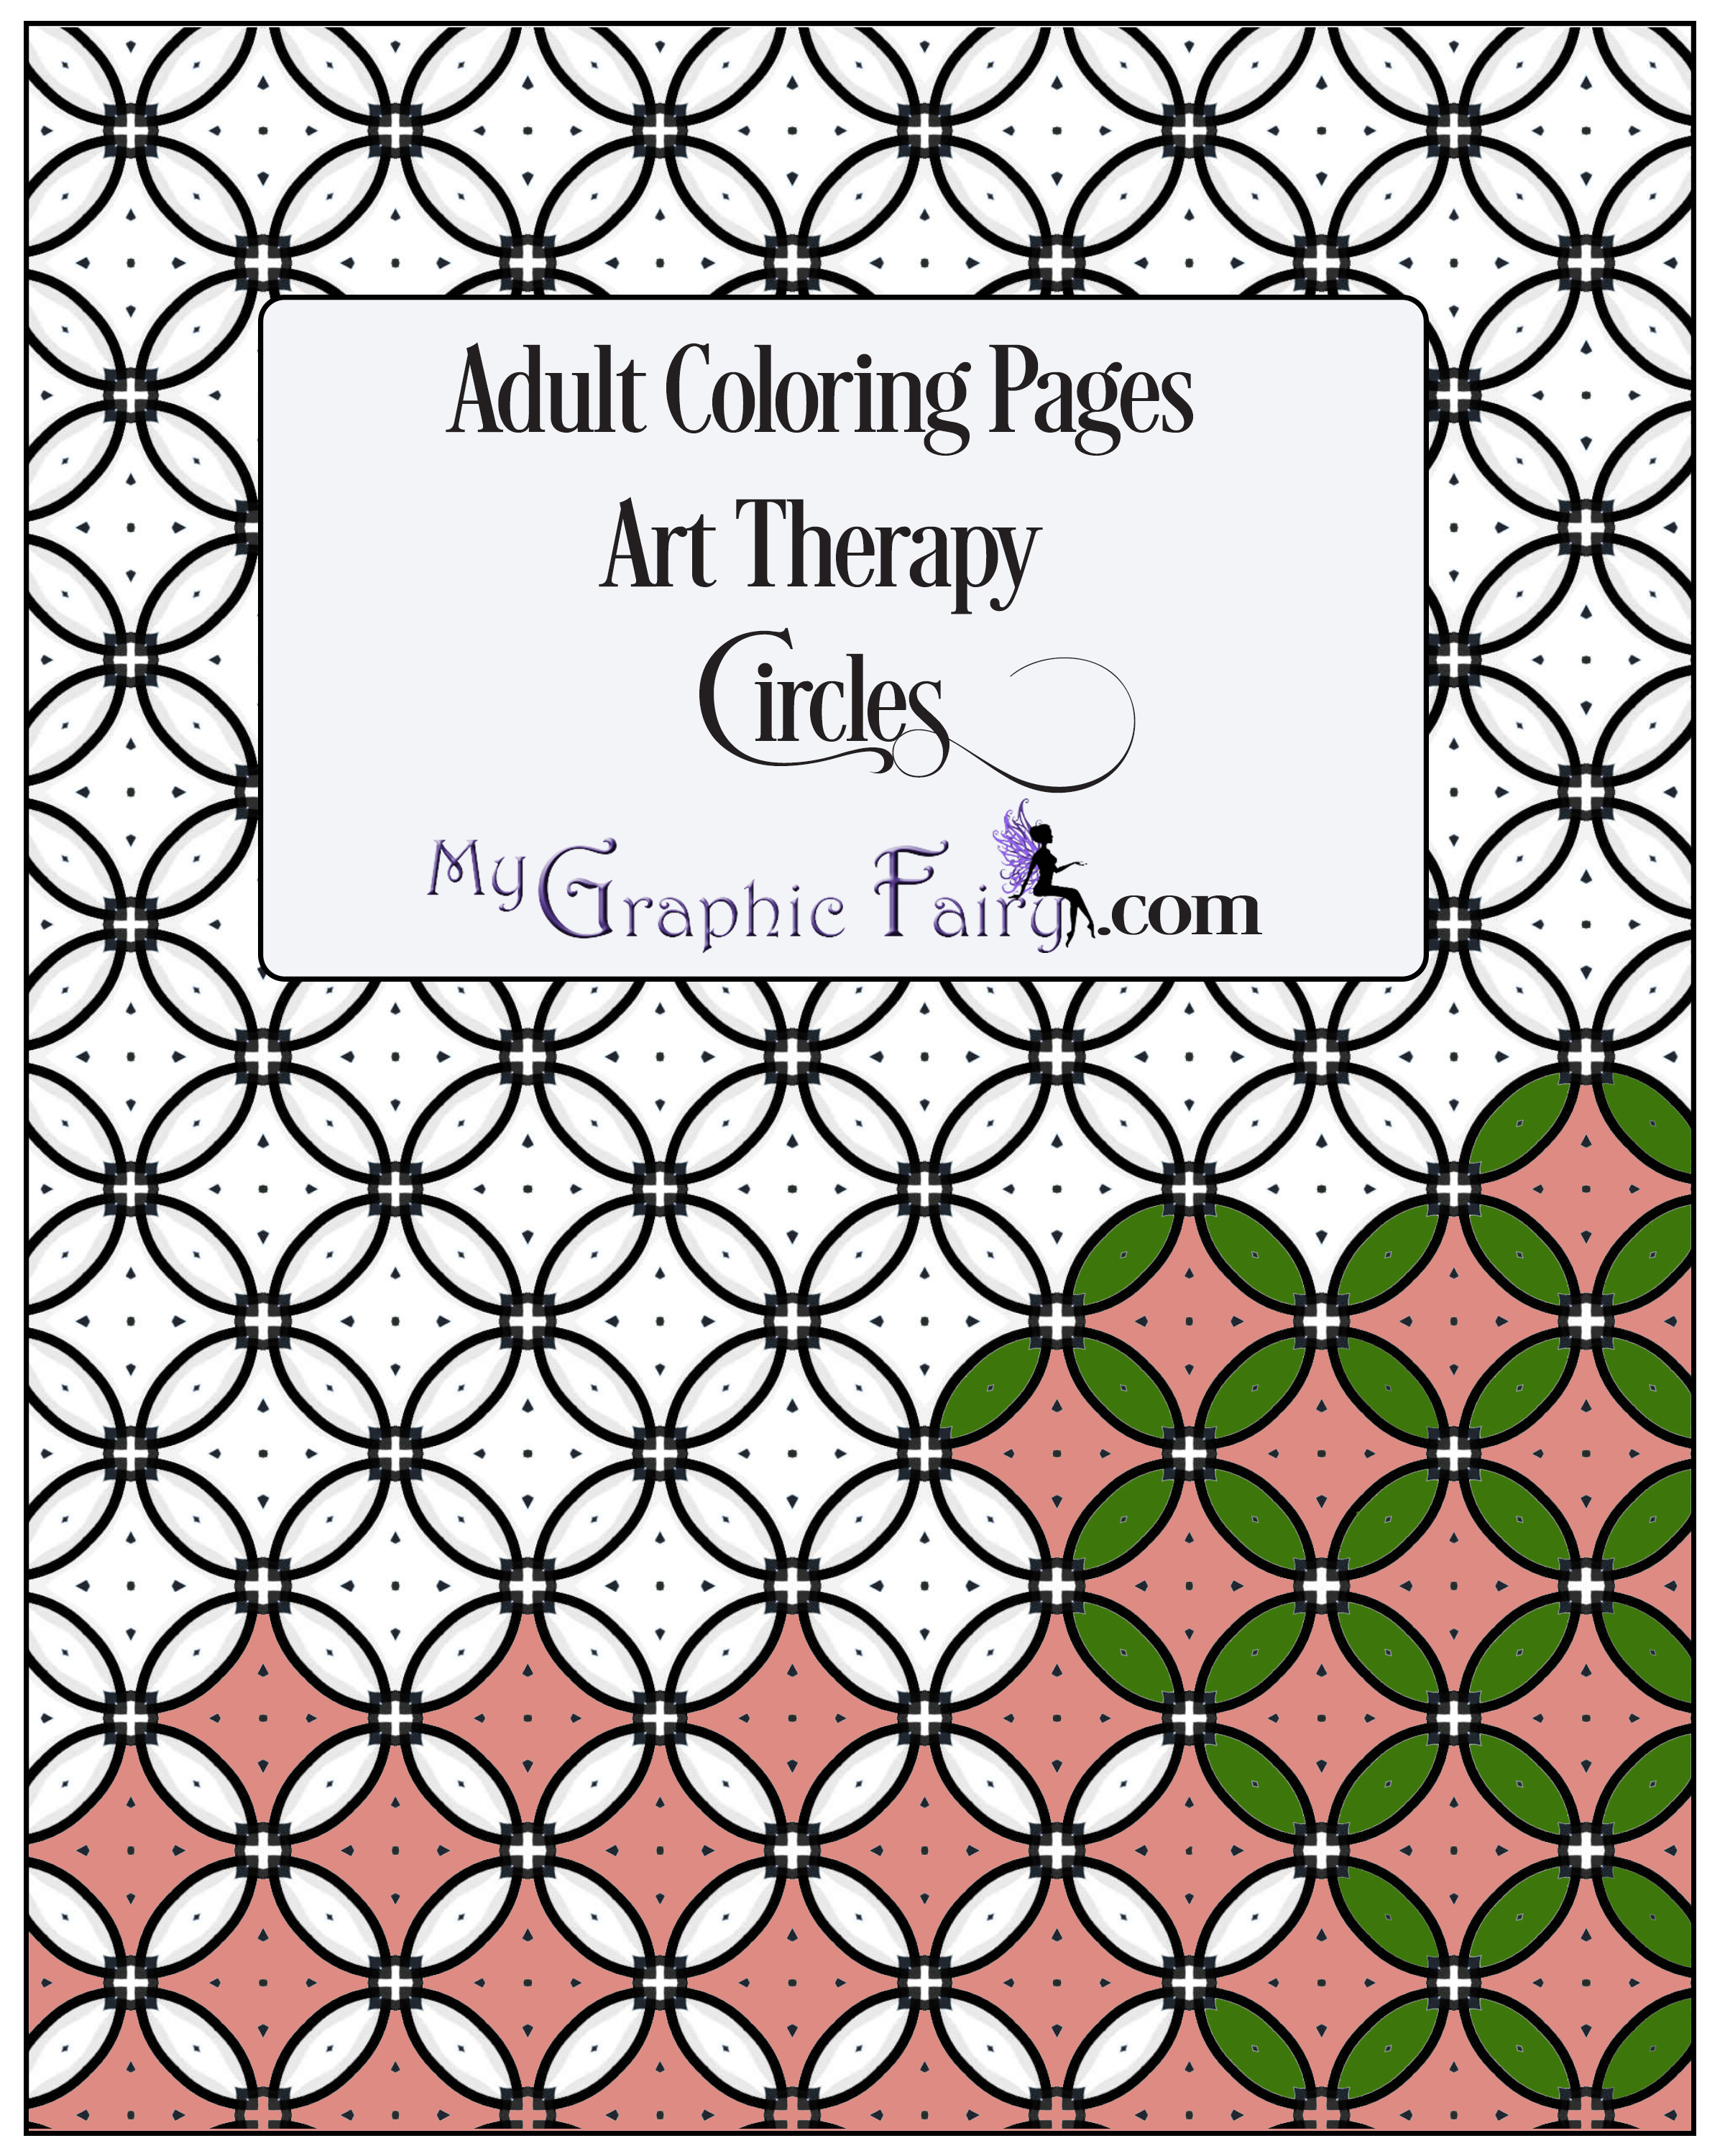 art therapy coloring pages - art therapy coloring pages circles my graphic fairy